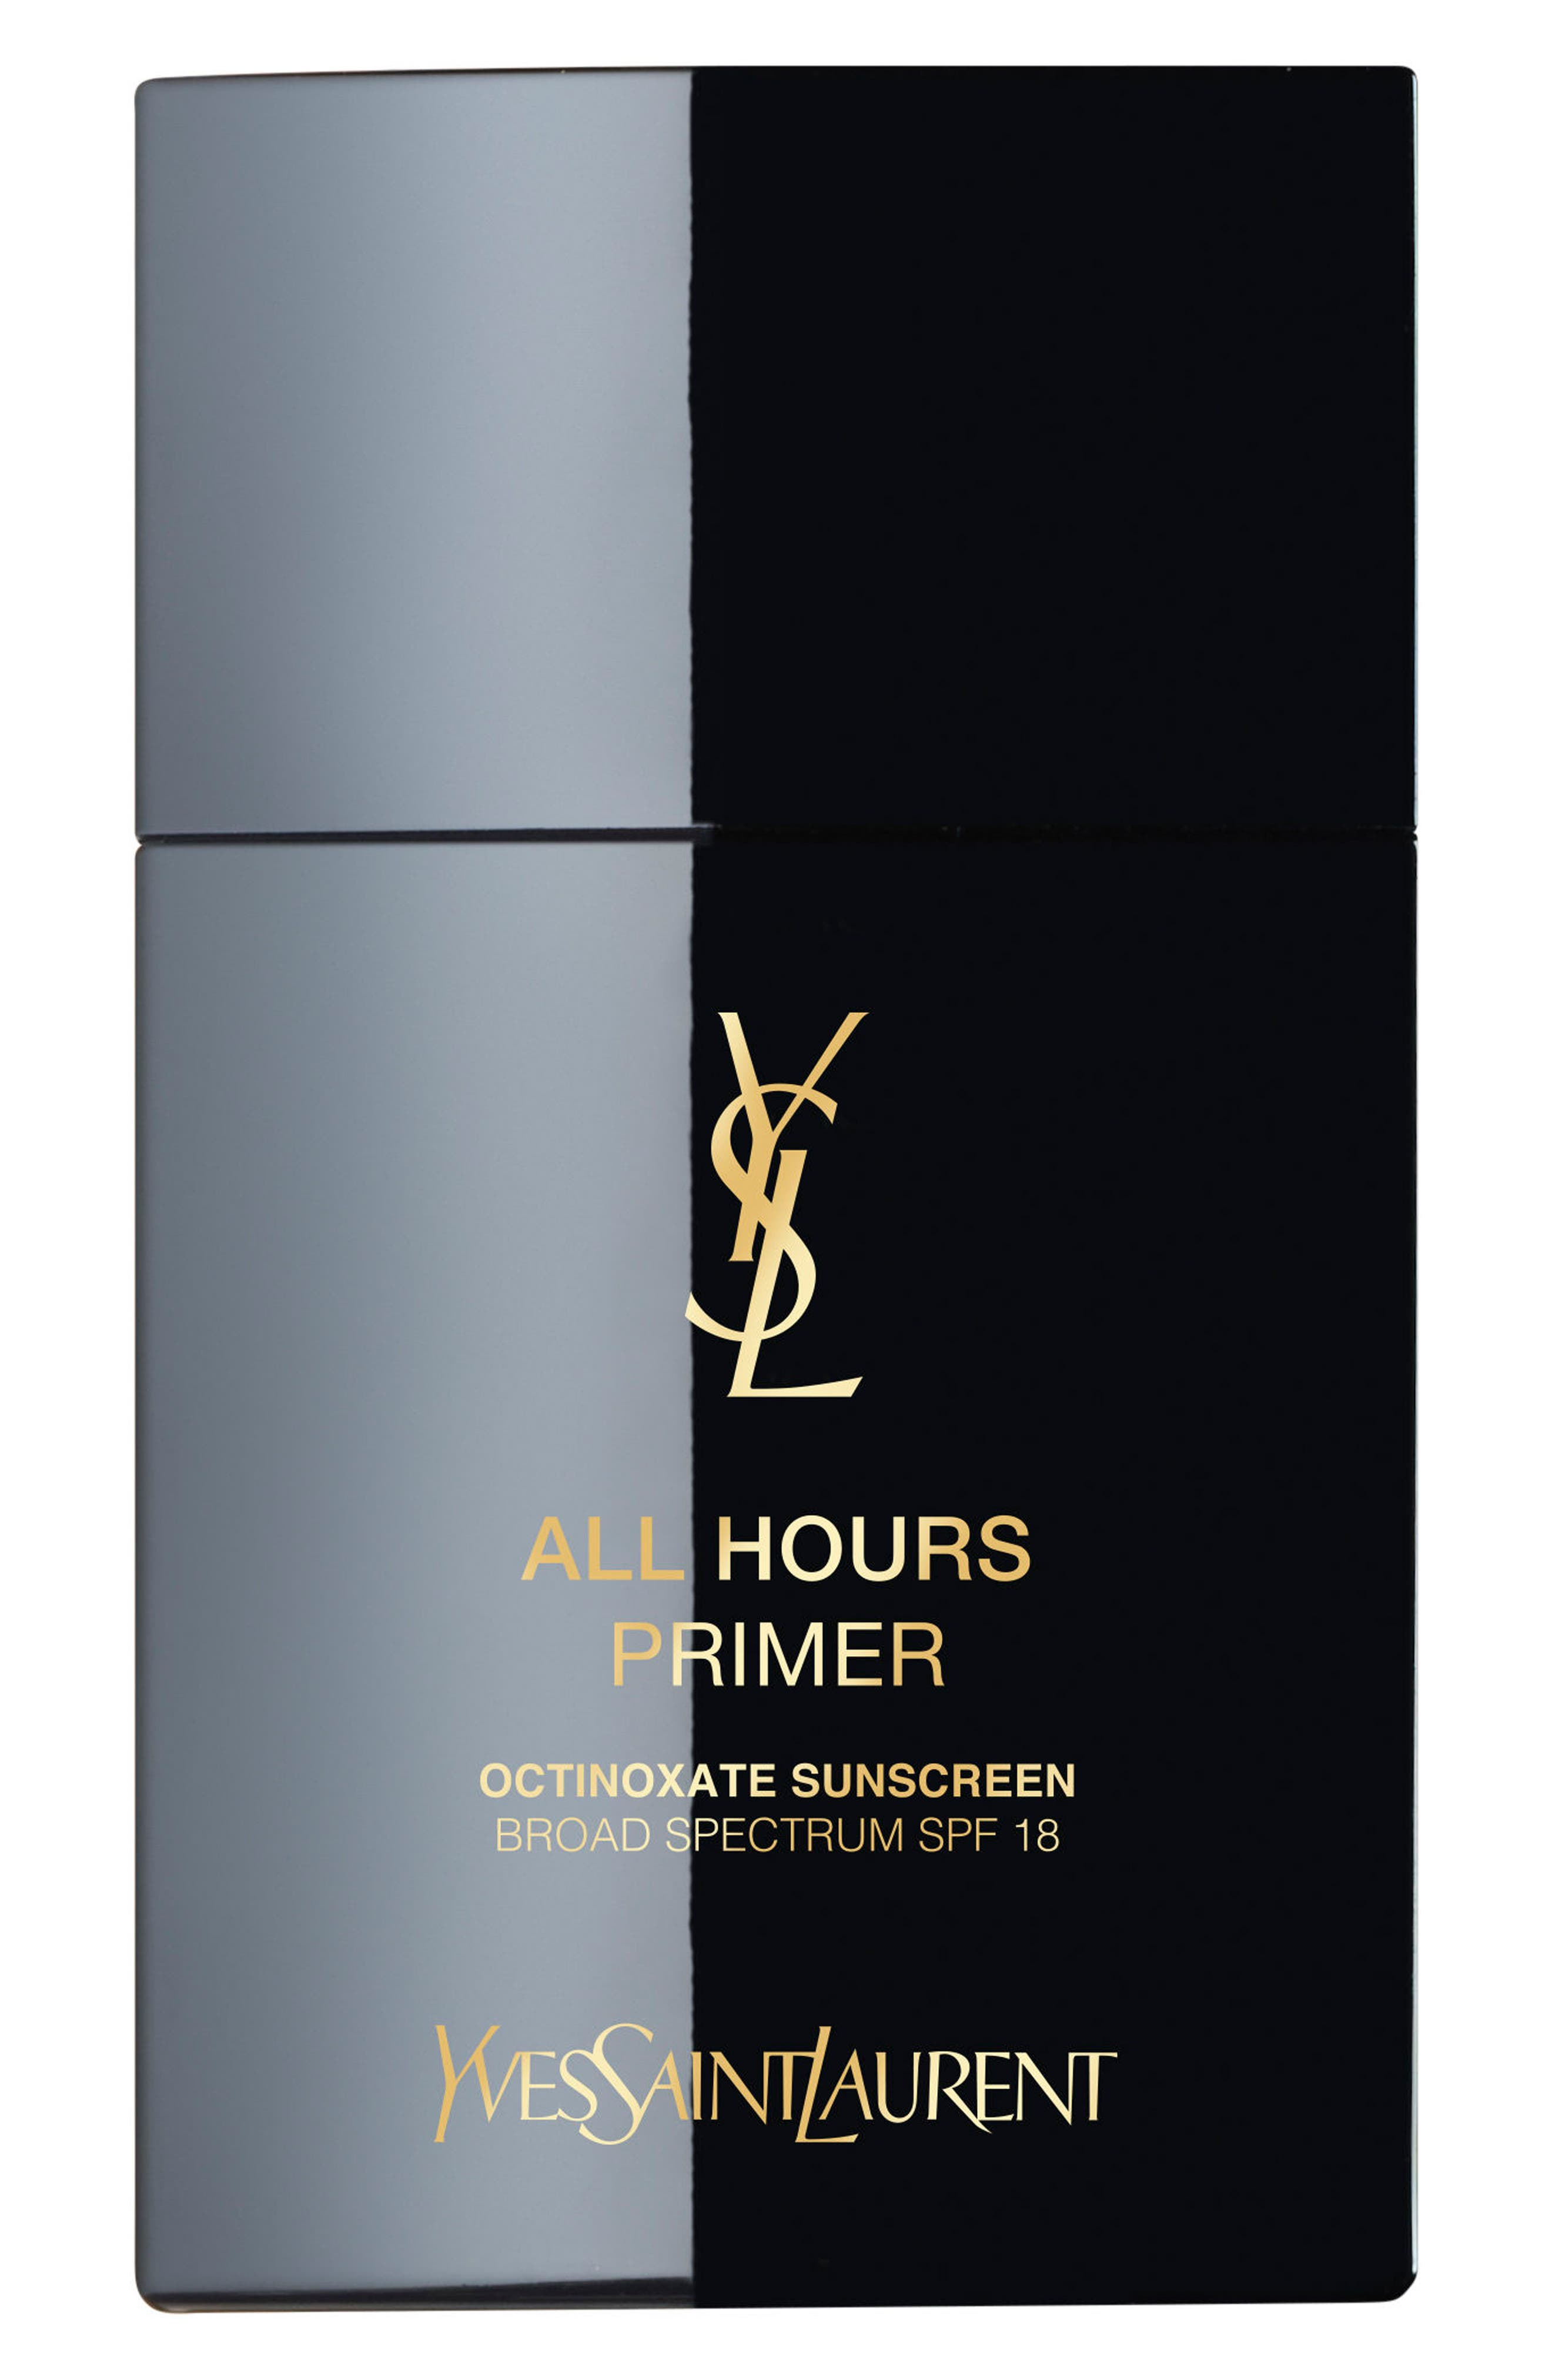 Yves Saint Laurent All Hours Primer SPF 18 (Limited Edition)